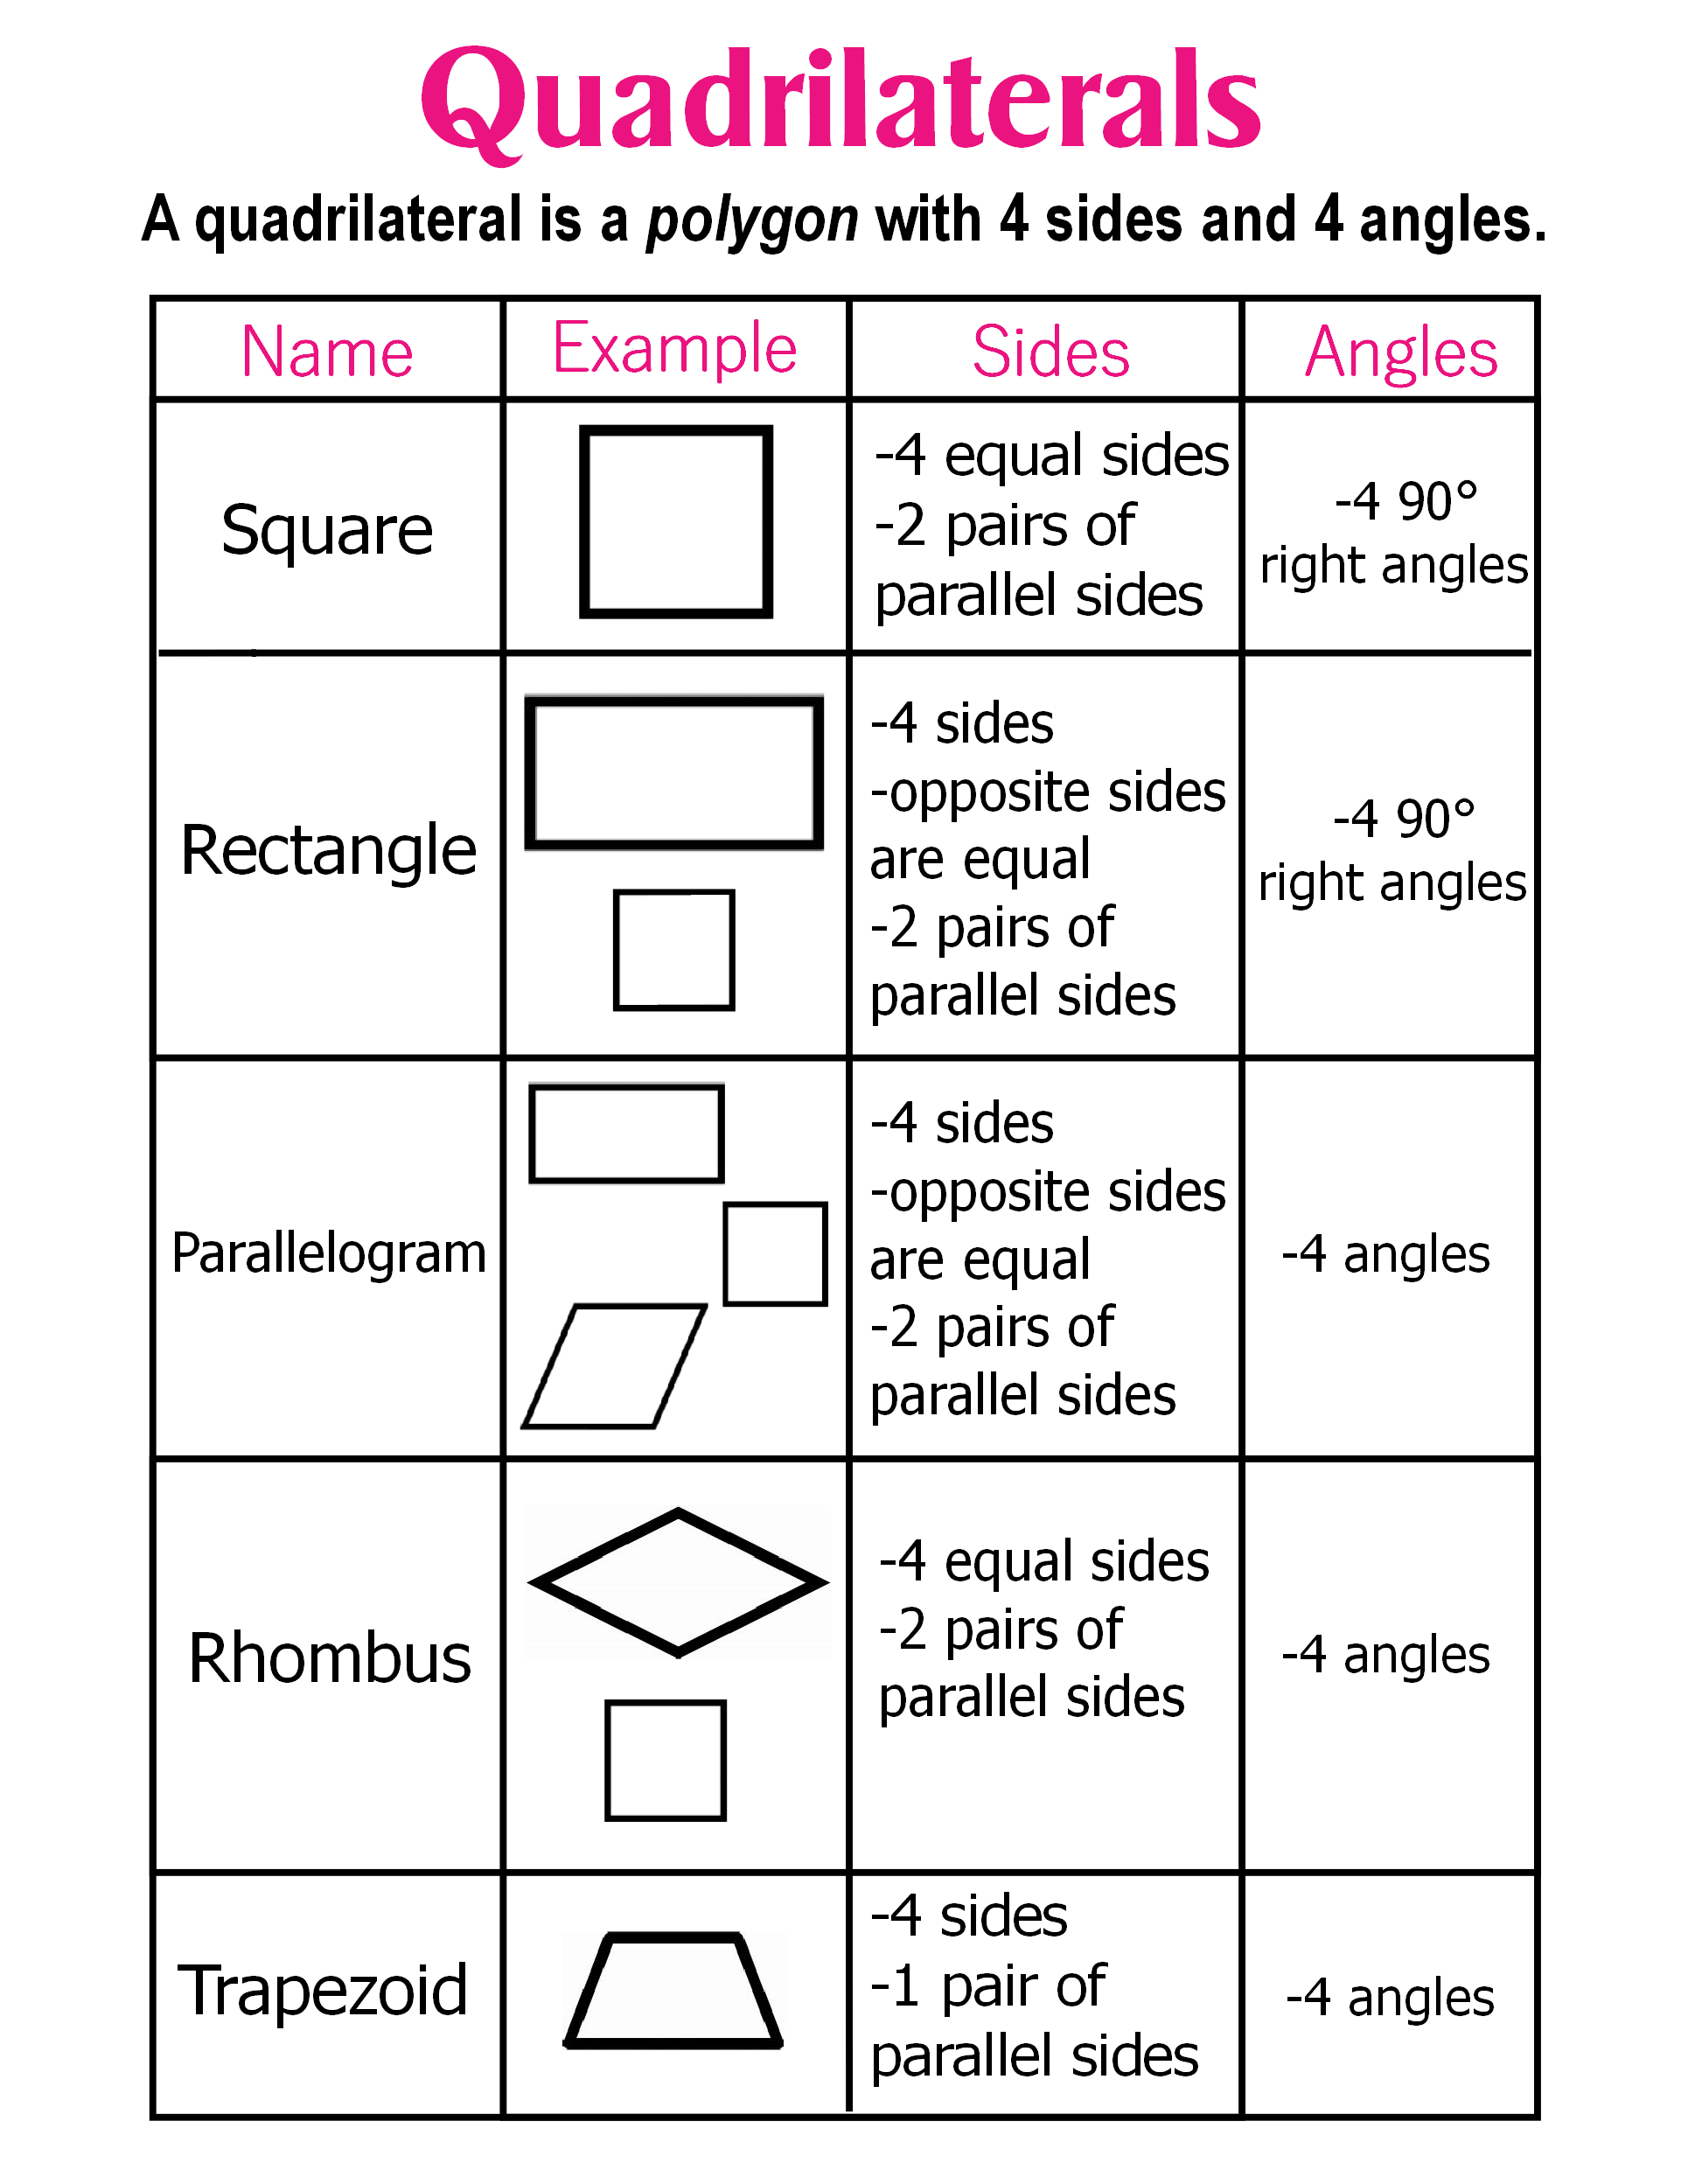 Quadrilaterals Anchor Chart Jungle Academy In 2020 Quadrilaterals Anchor Chart 8th Grade Math Worksheets Math Anchor Charts